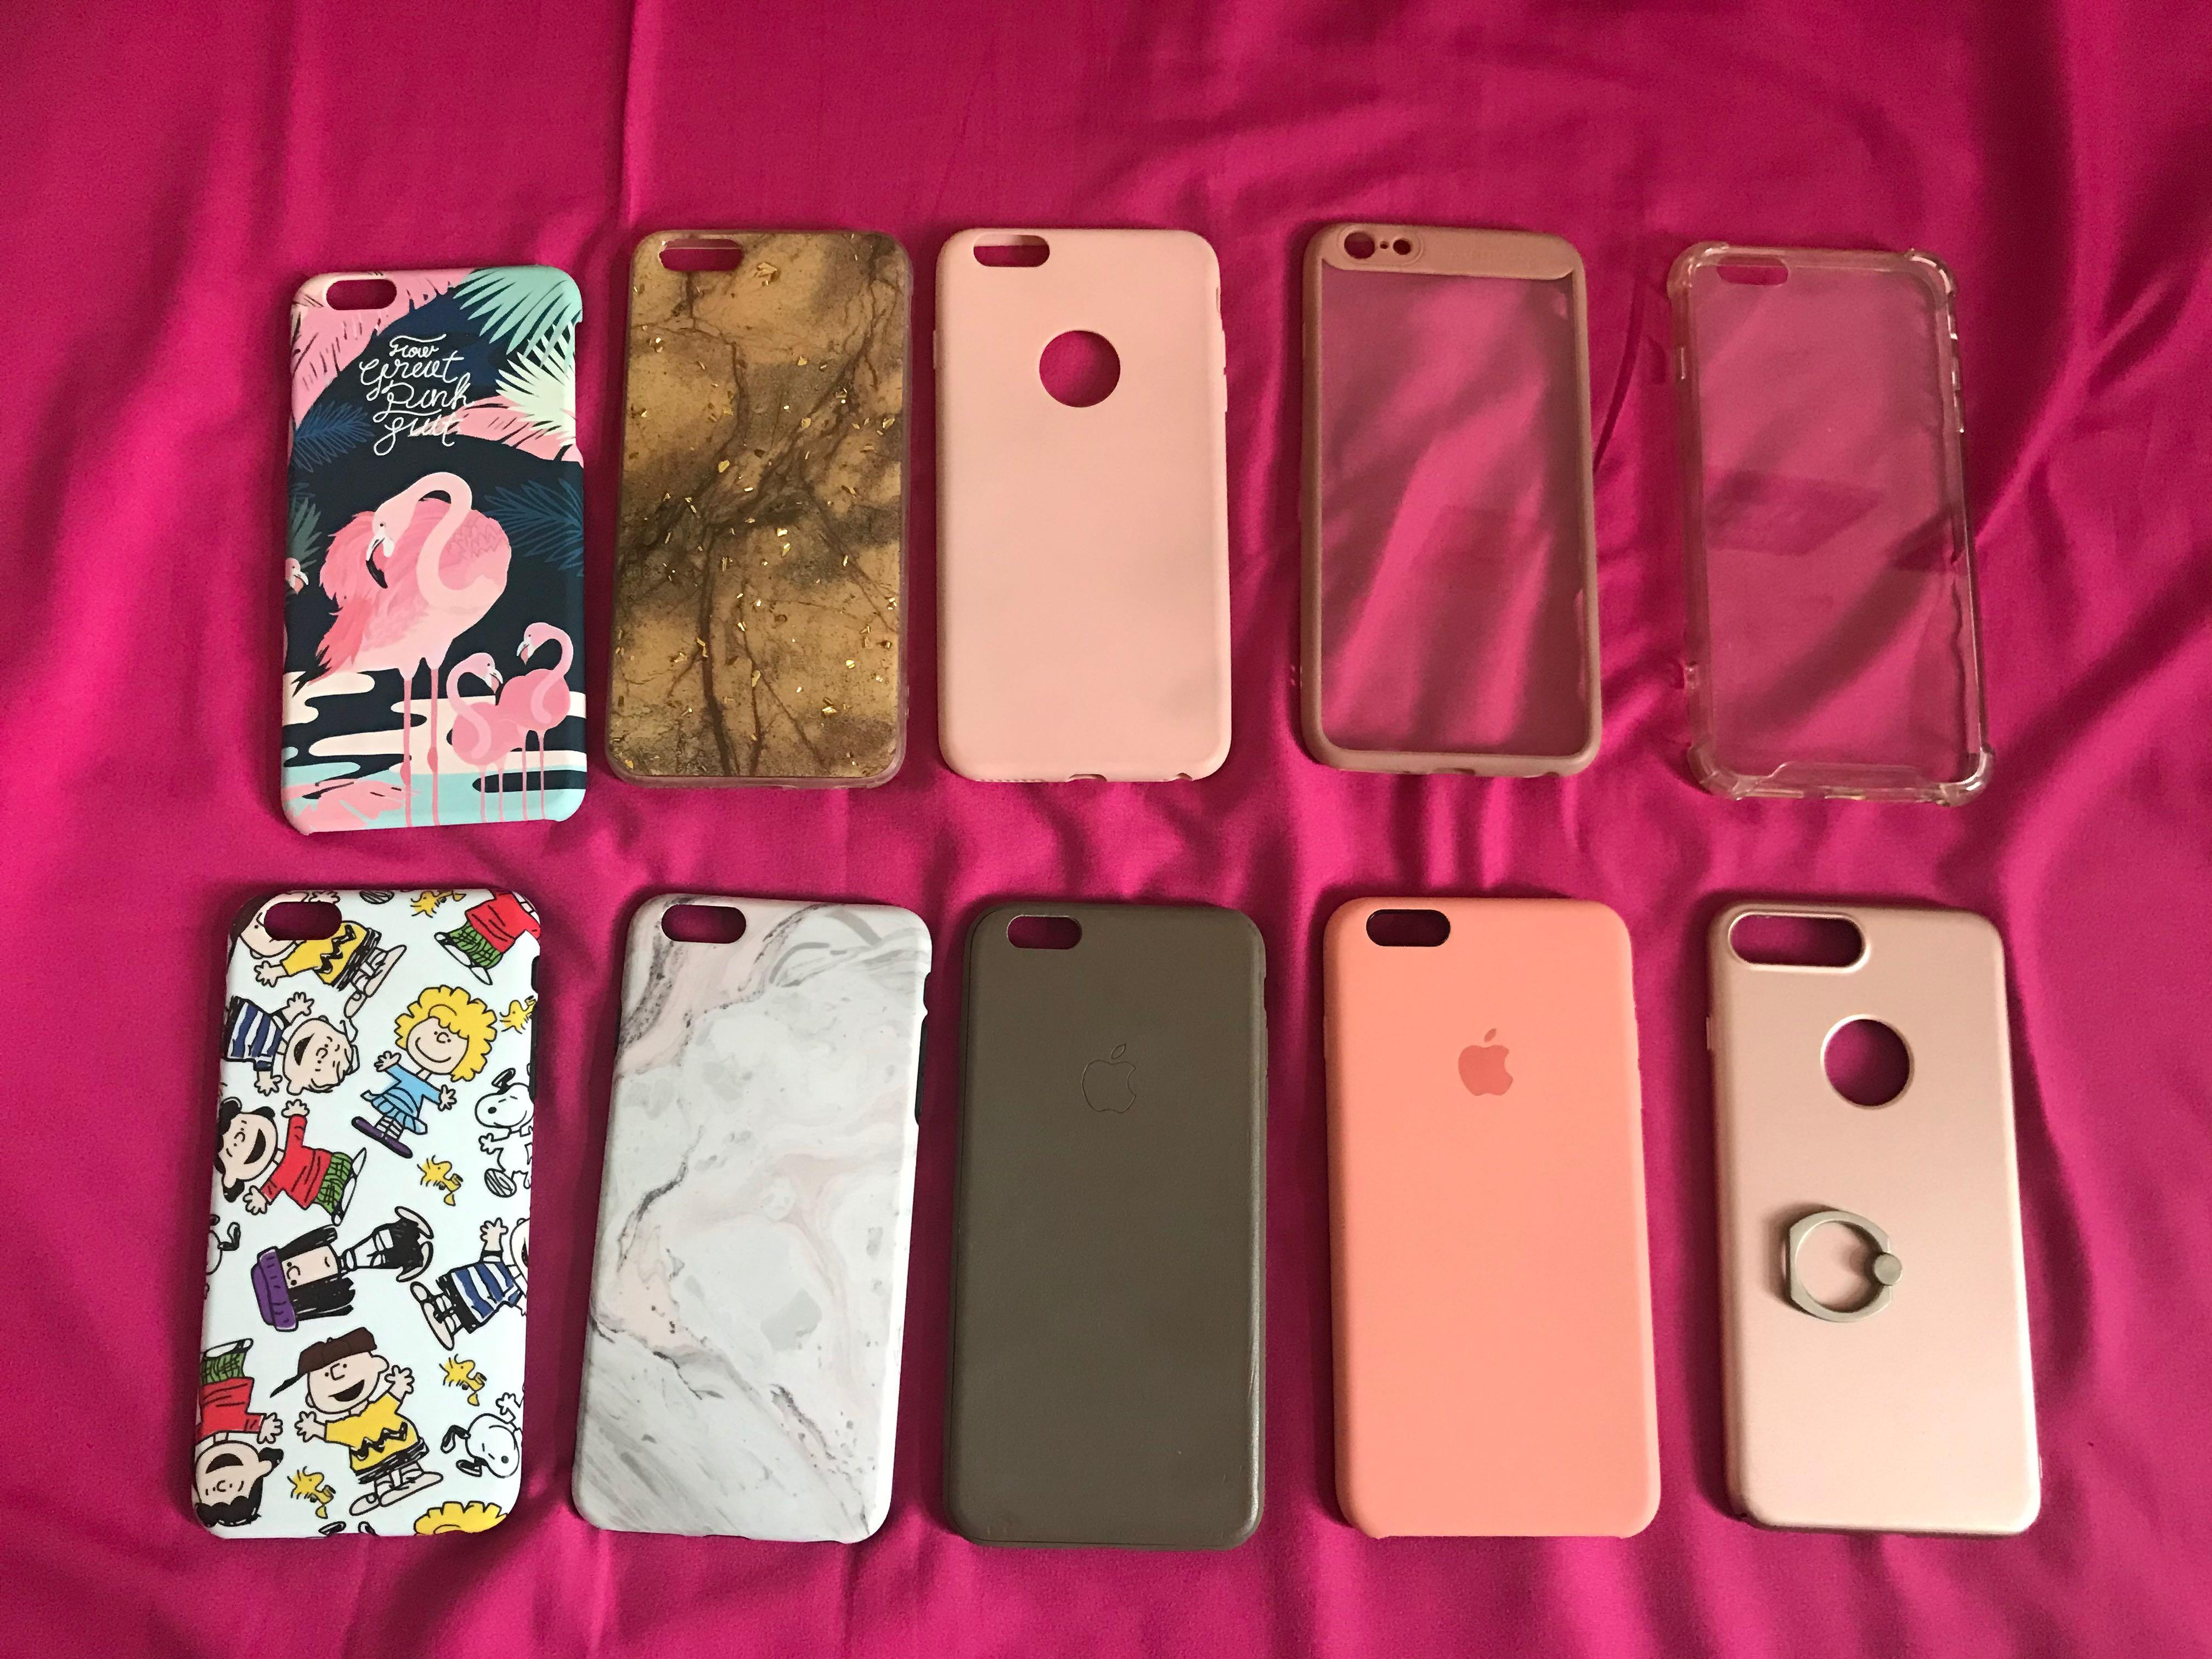 Take All case iphone 6/6s plus